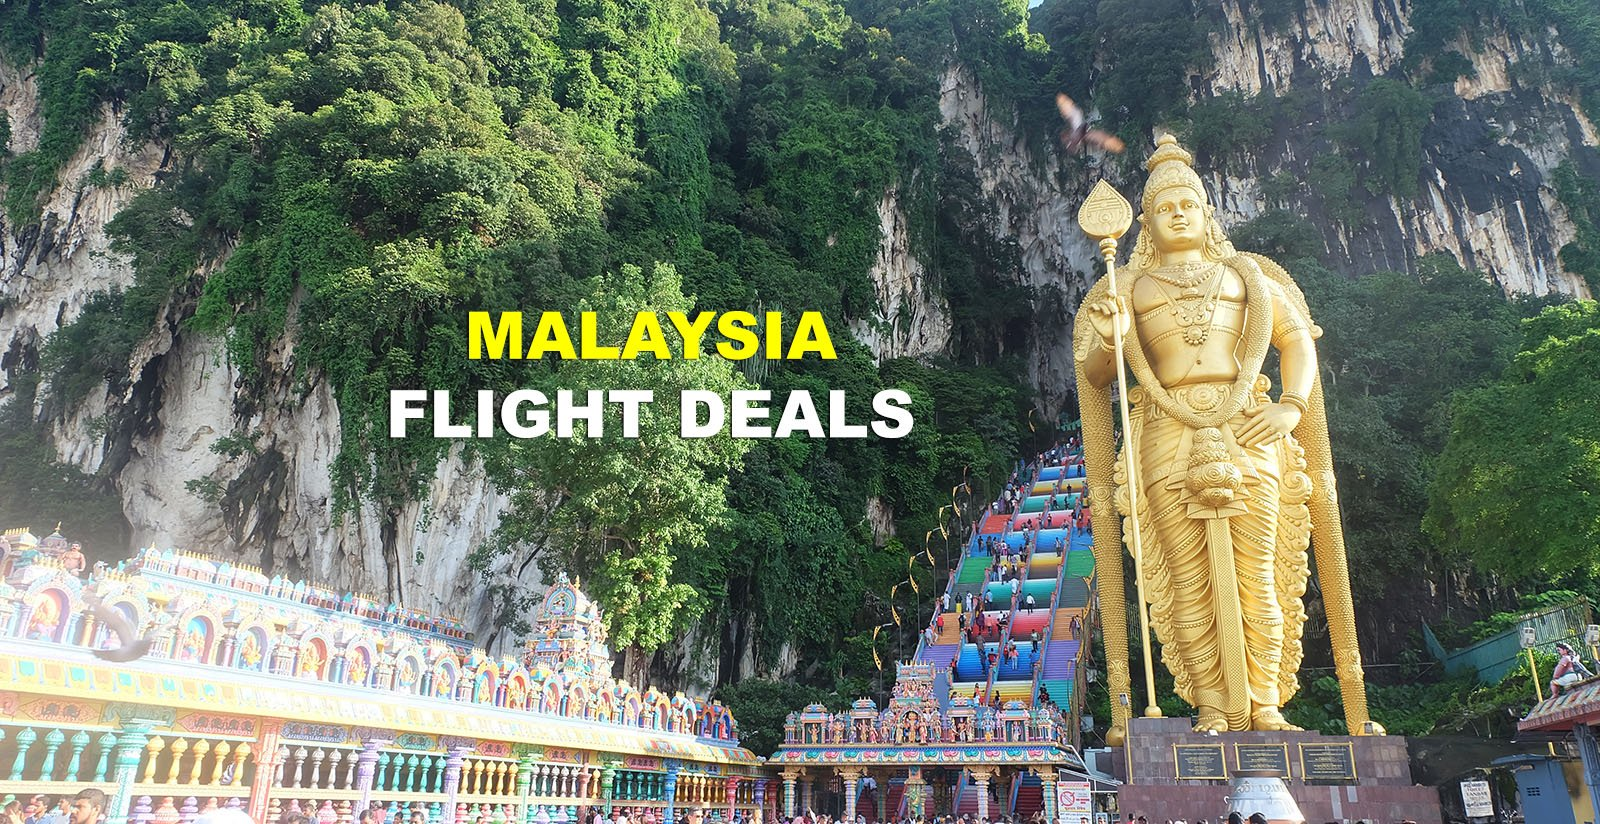 Malaysia Flight Deals: Air Asia's 18th Anniversary Seat Sale